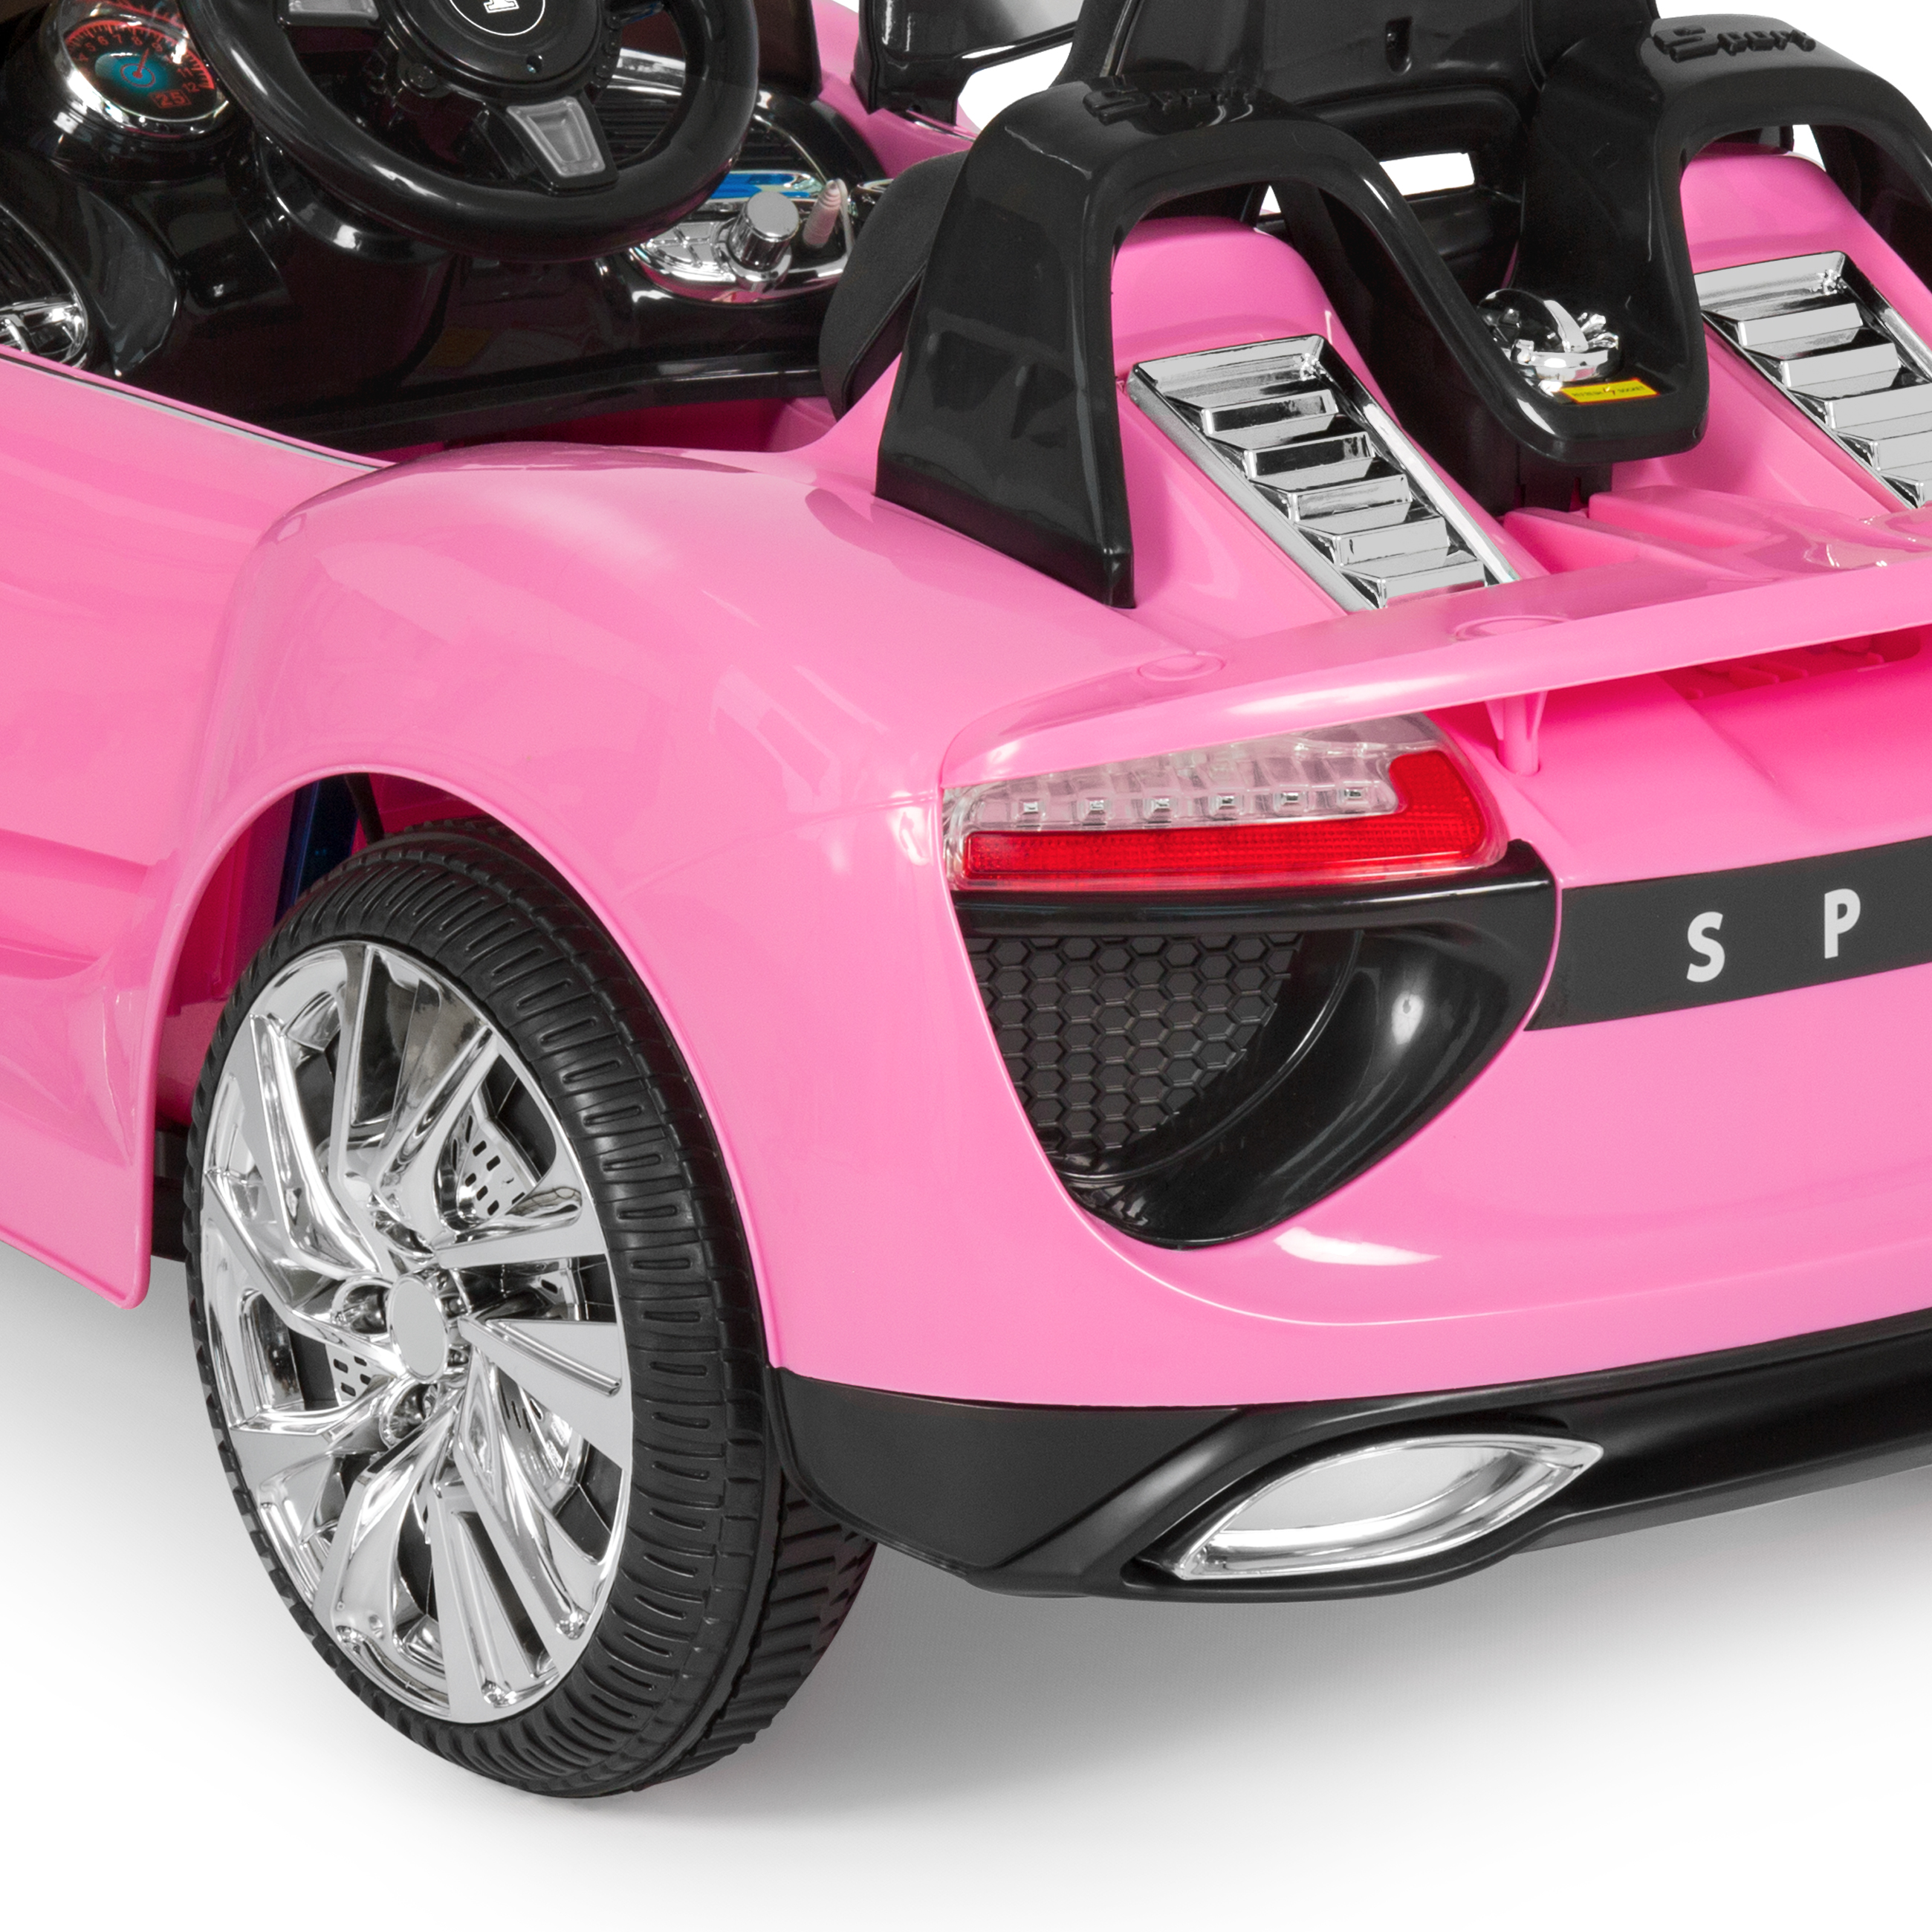 Pink Cars for Sale Near Me Lovely Best Choice Products 12v Kids Battery Powered Remote Control